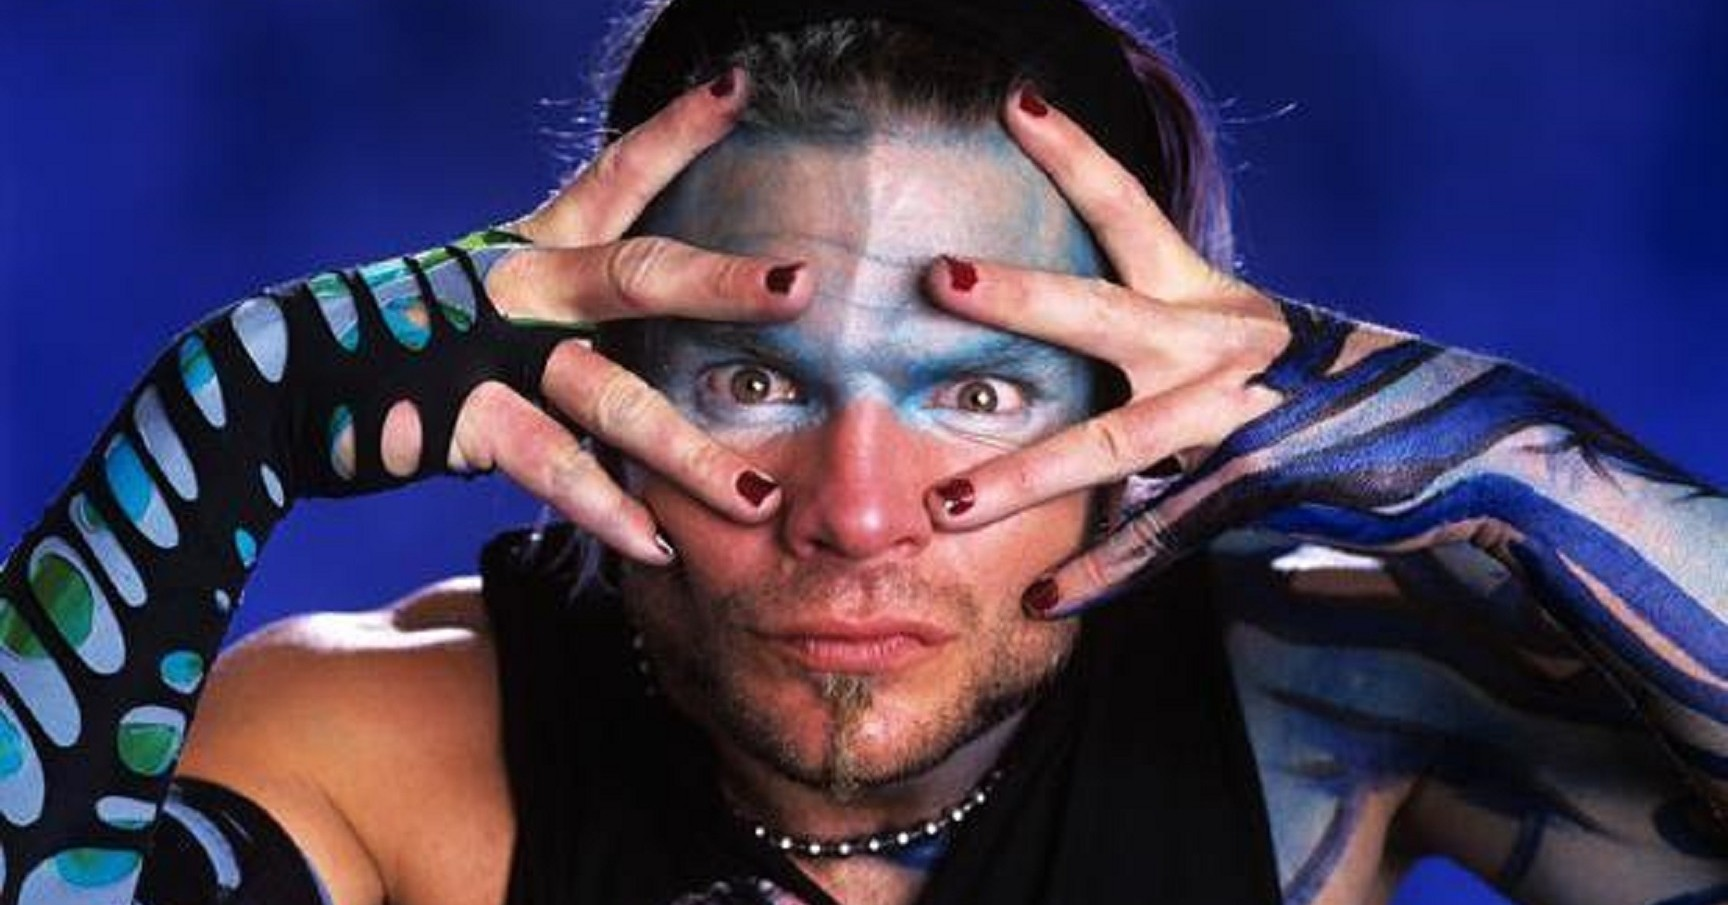 wwe superstar jeff hardy close up hd 3d wallpaper